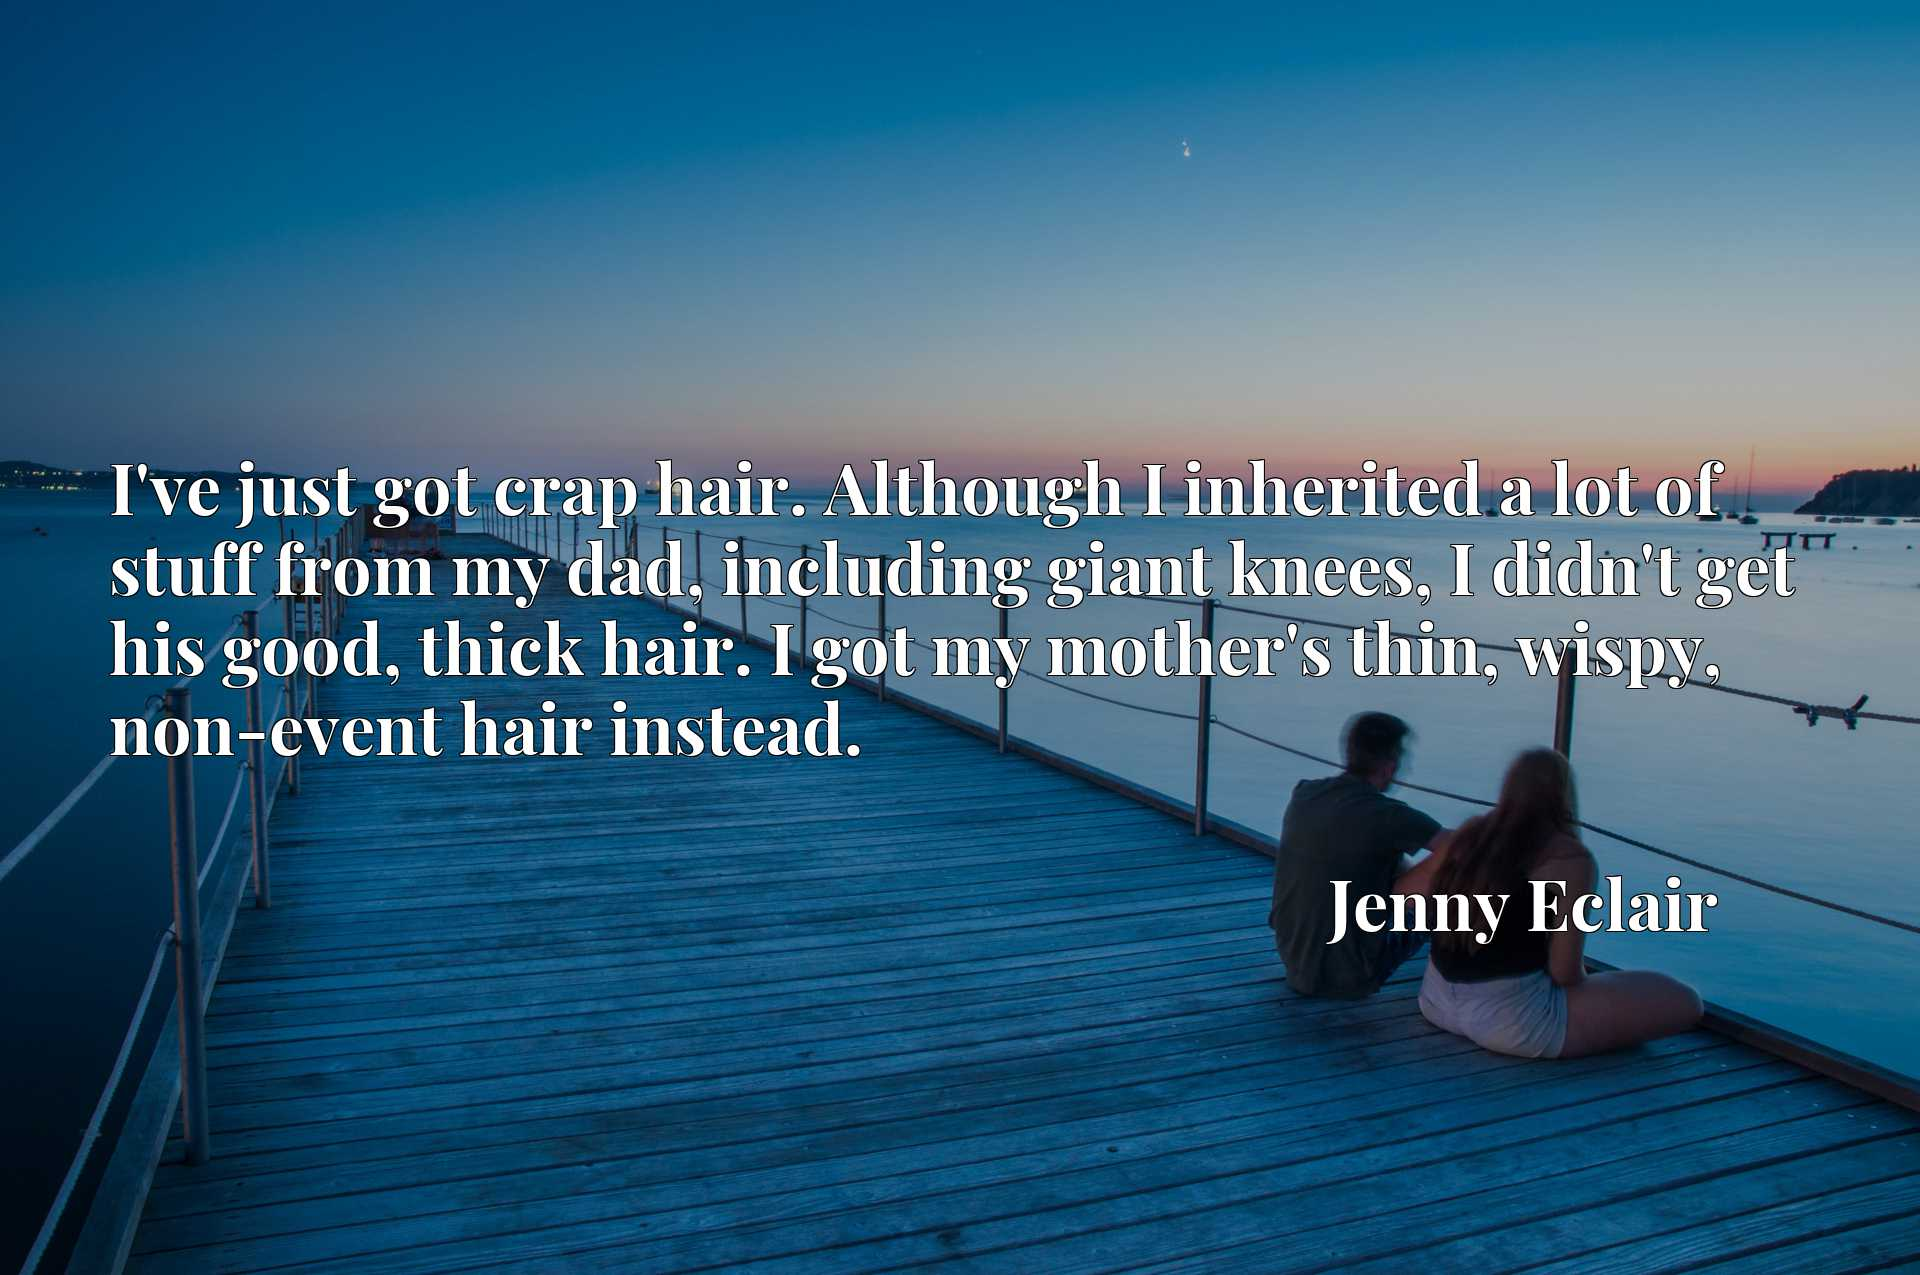 I've just got crap hair. Although I inherited a lot of stuff from my dad, including giant knees, I didn't get his good, thick hair. I got my mother's thin, wispy, non-event hair instead.